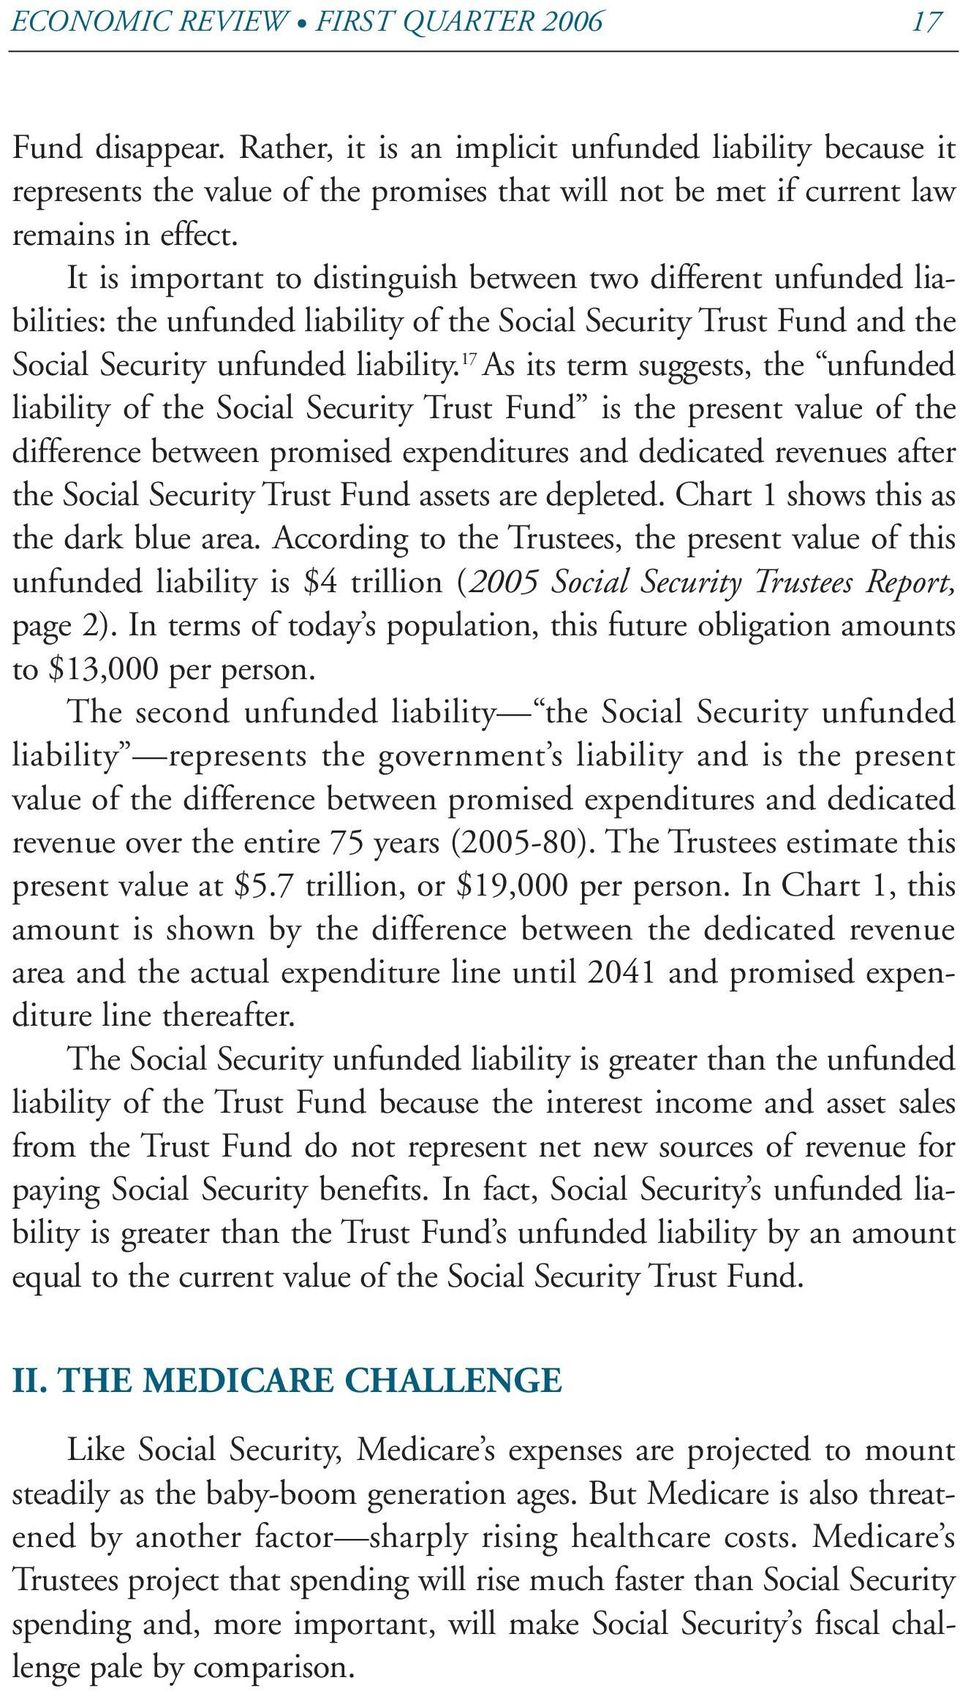 It is important to distinguish between two different unfunded liabilities: the unfunded liability of the Social Security Trust Fund and the Social Security unfunded liability.